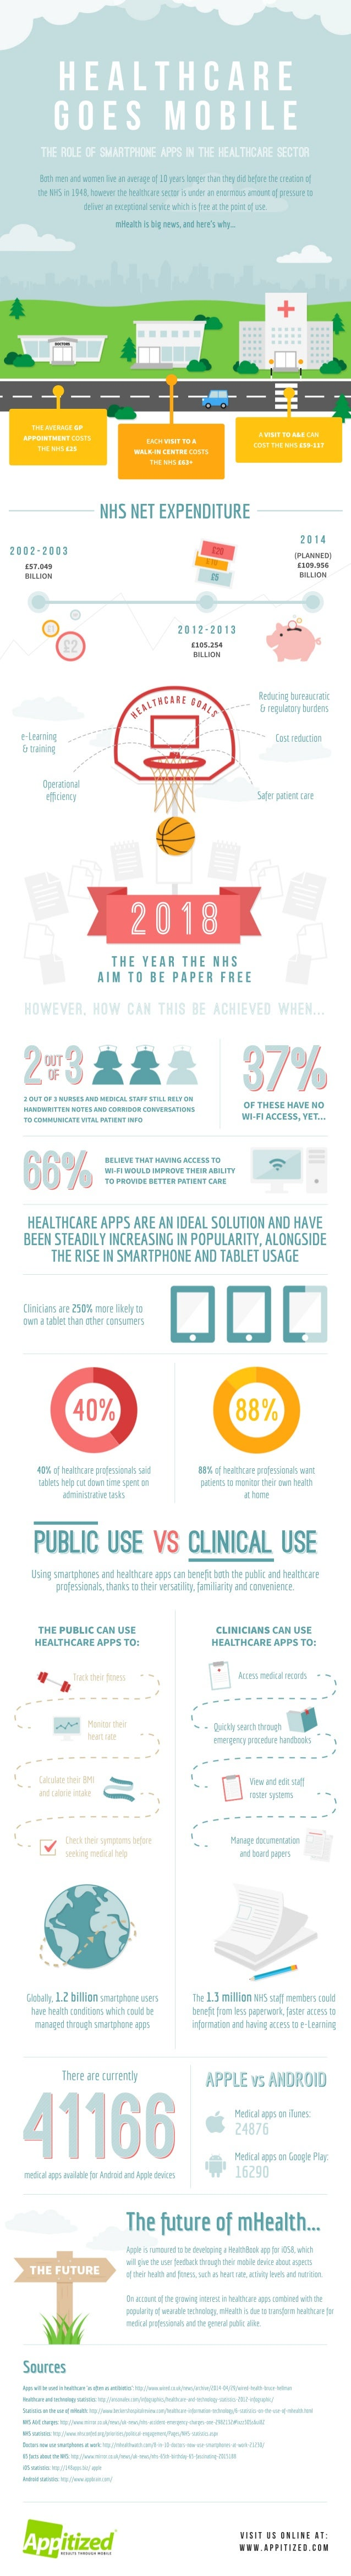 HEALTHCARE  GOES MOBILE  THE ROLE OF SMARTPHONE APPS IN THE HEALTHCARE SECTOR  Bìh men and women live an average of 10 yea...